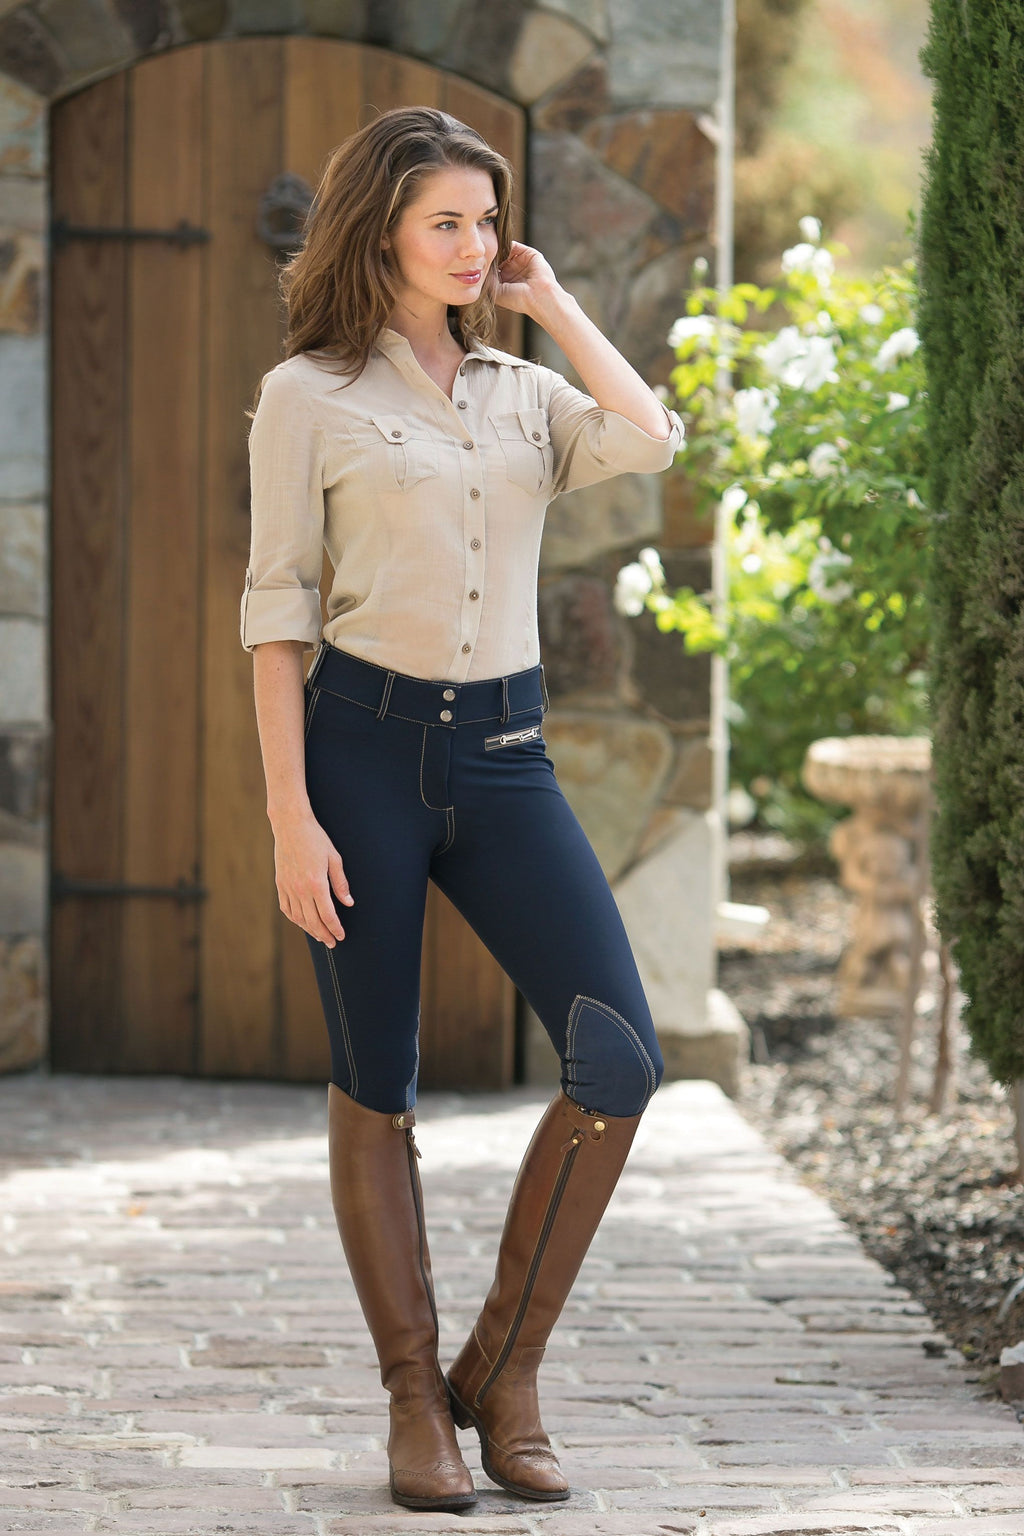 Goode Rider Iconic Breeches Ladies Knee Patch*